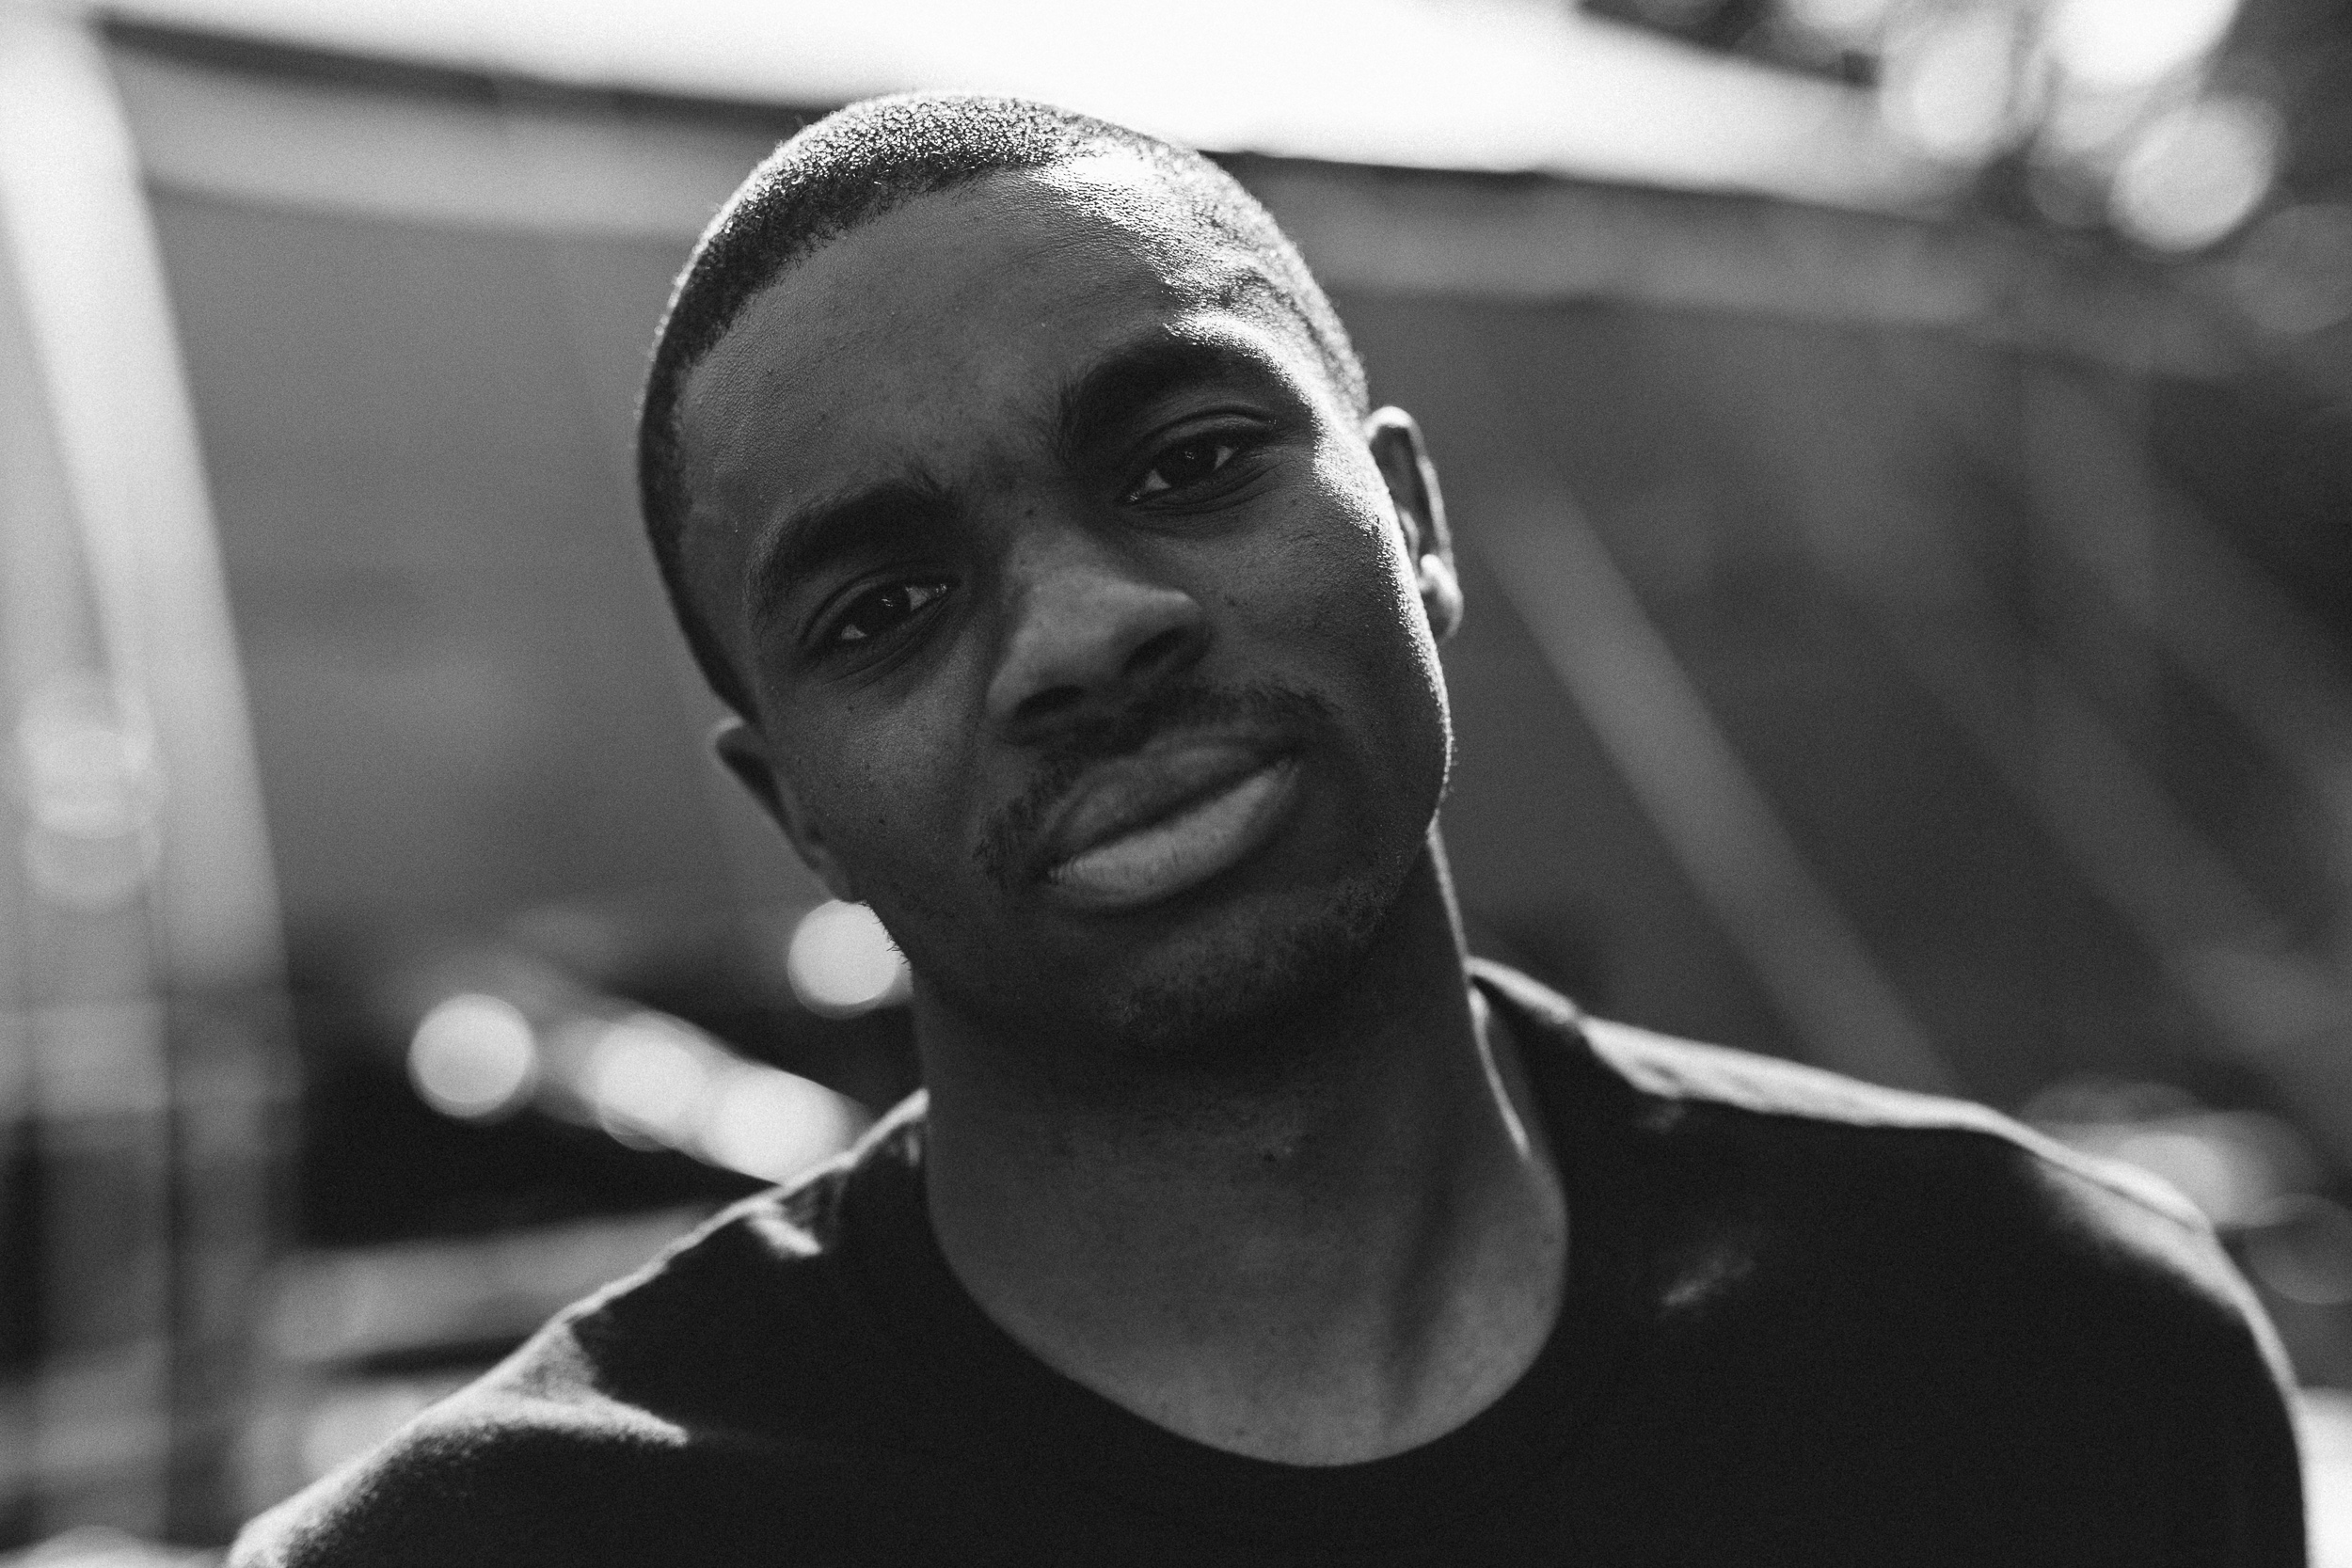 Vince Staples at Wireless Festival by Adam Elmakias